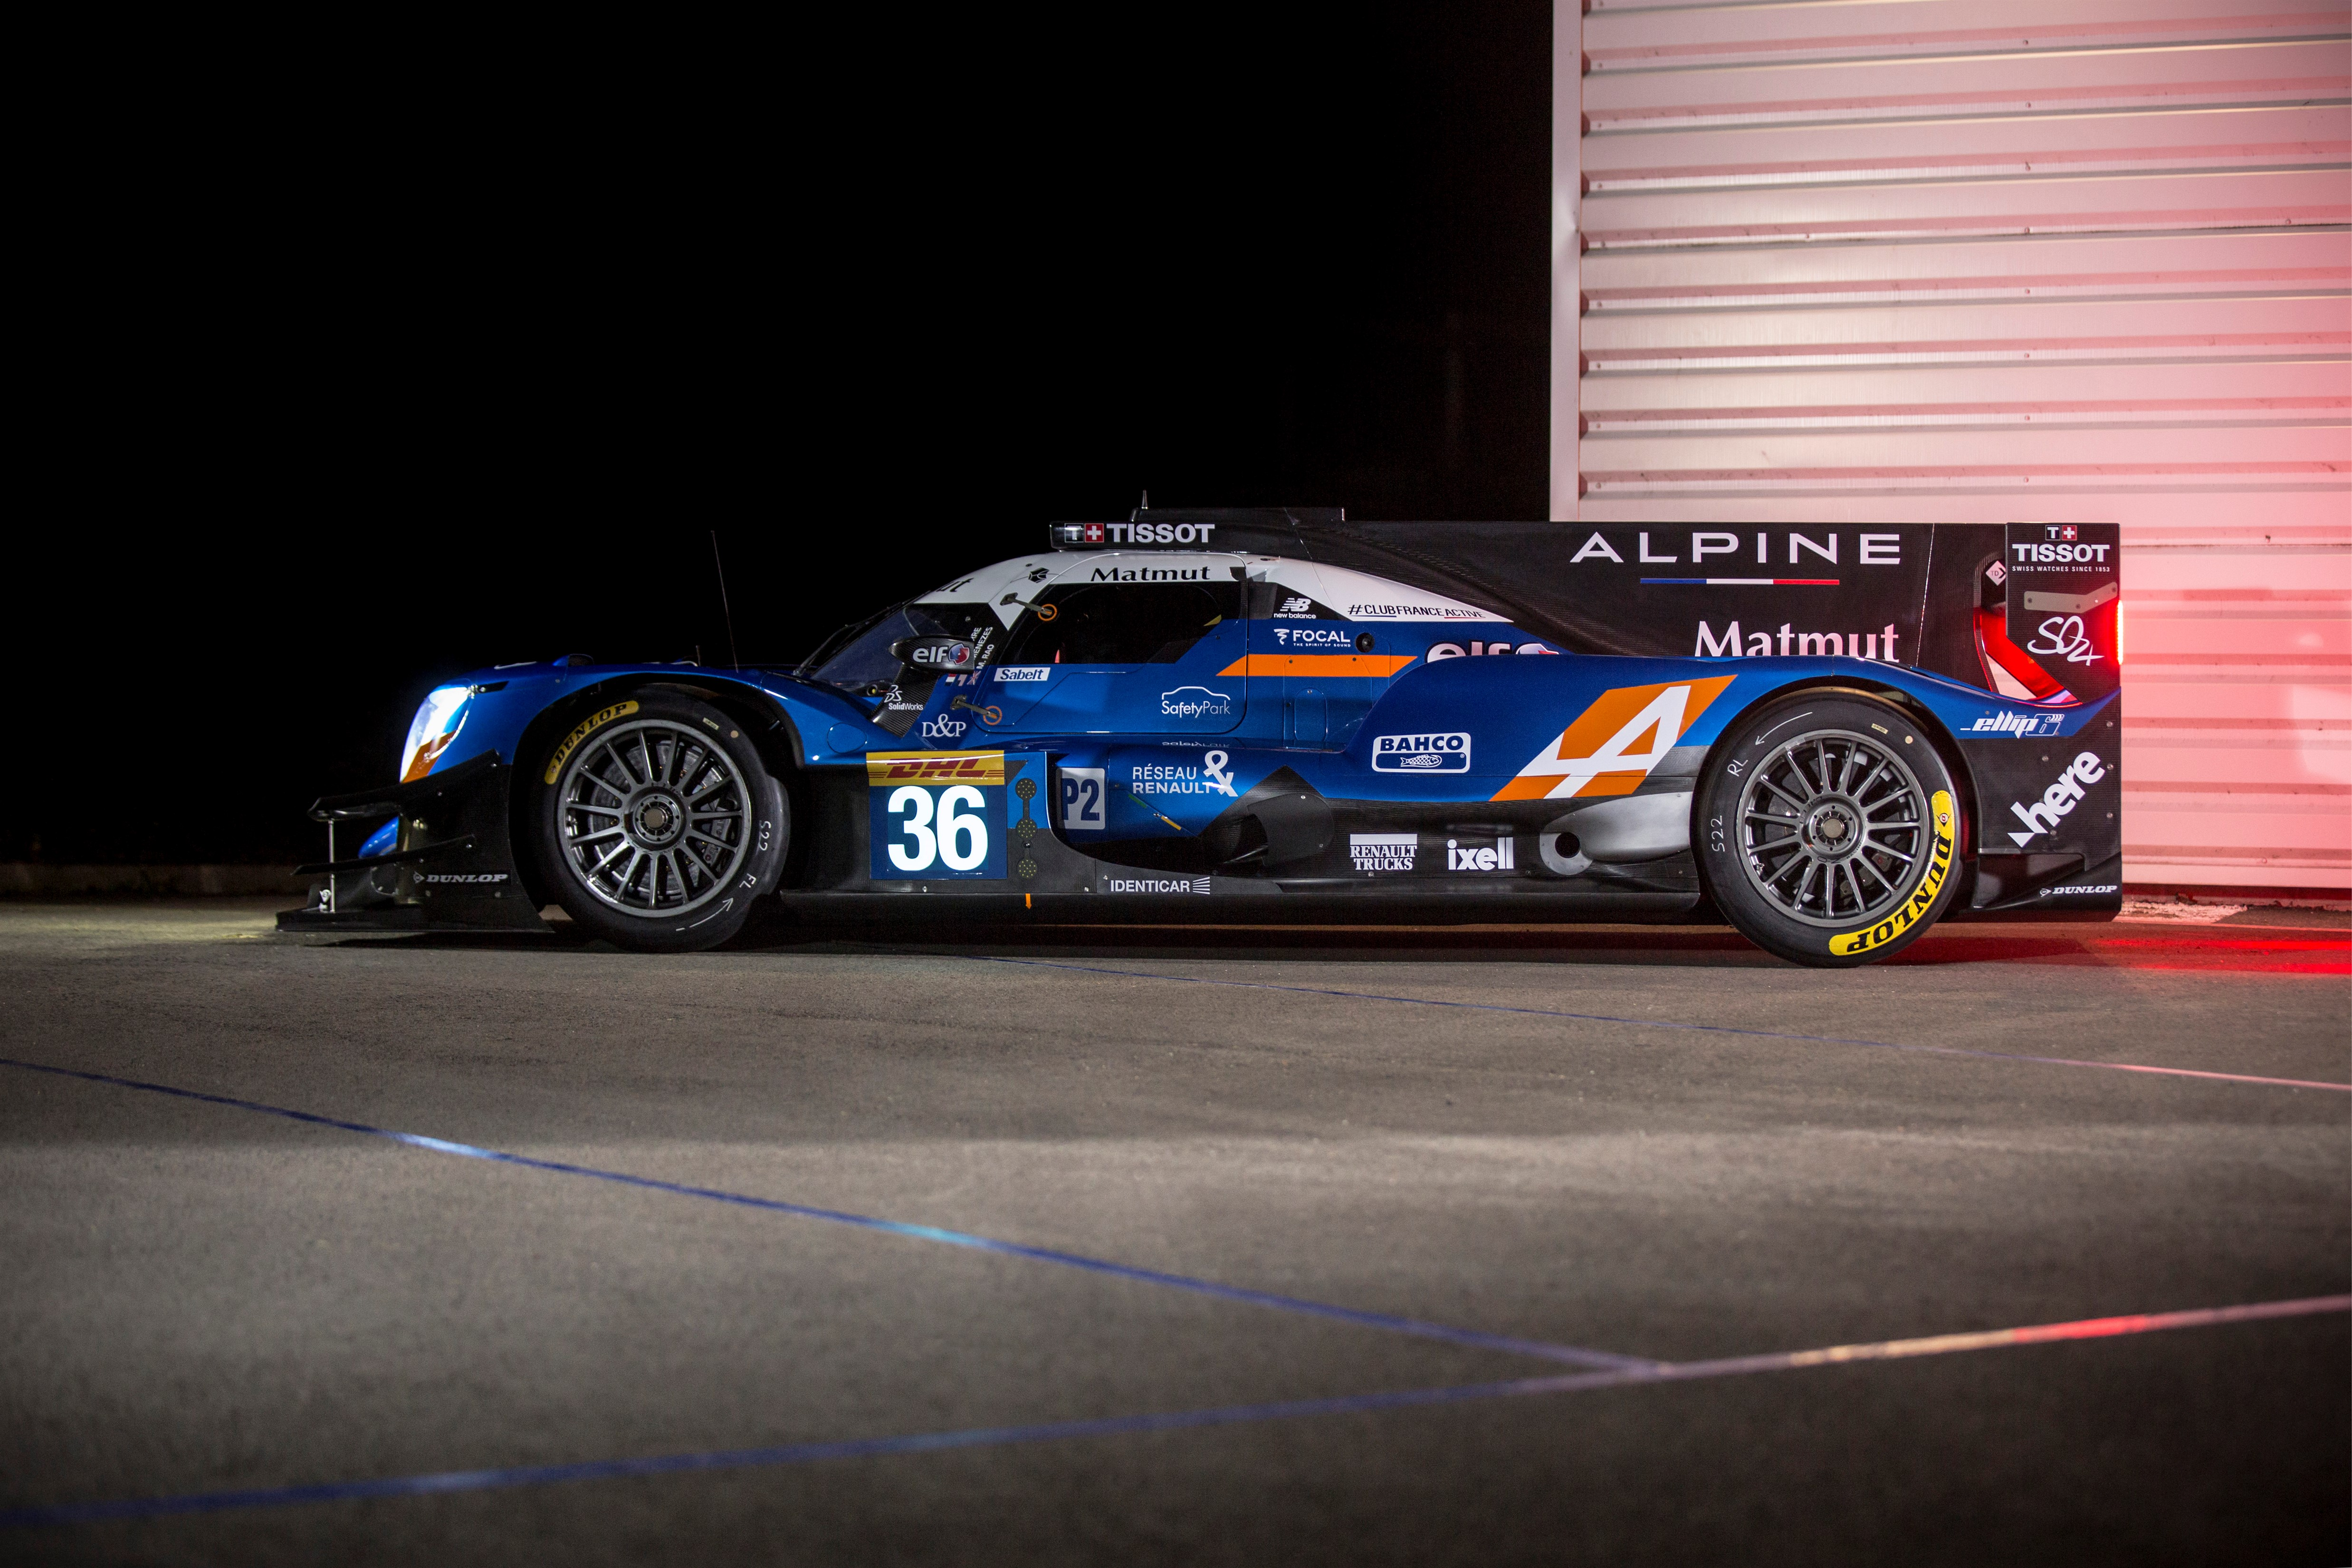 alpine unveils the a470 their lmp2 entry for the 2017 wec season the drive. Black Bedroom Furniture Sets. Home Design Ideas